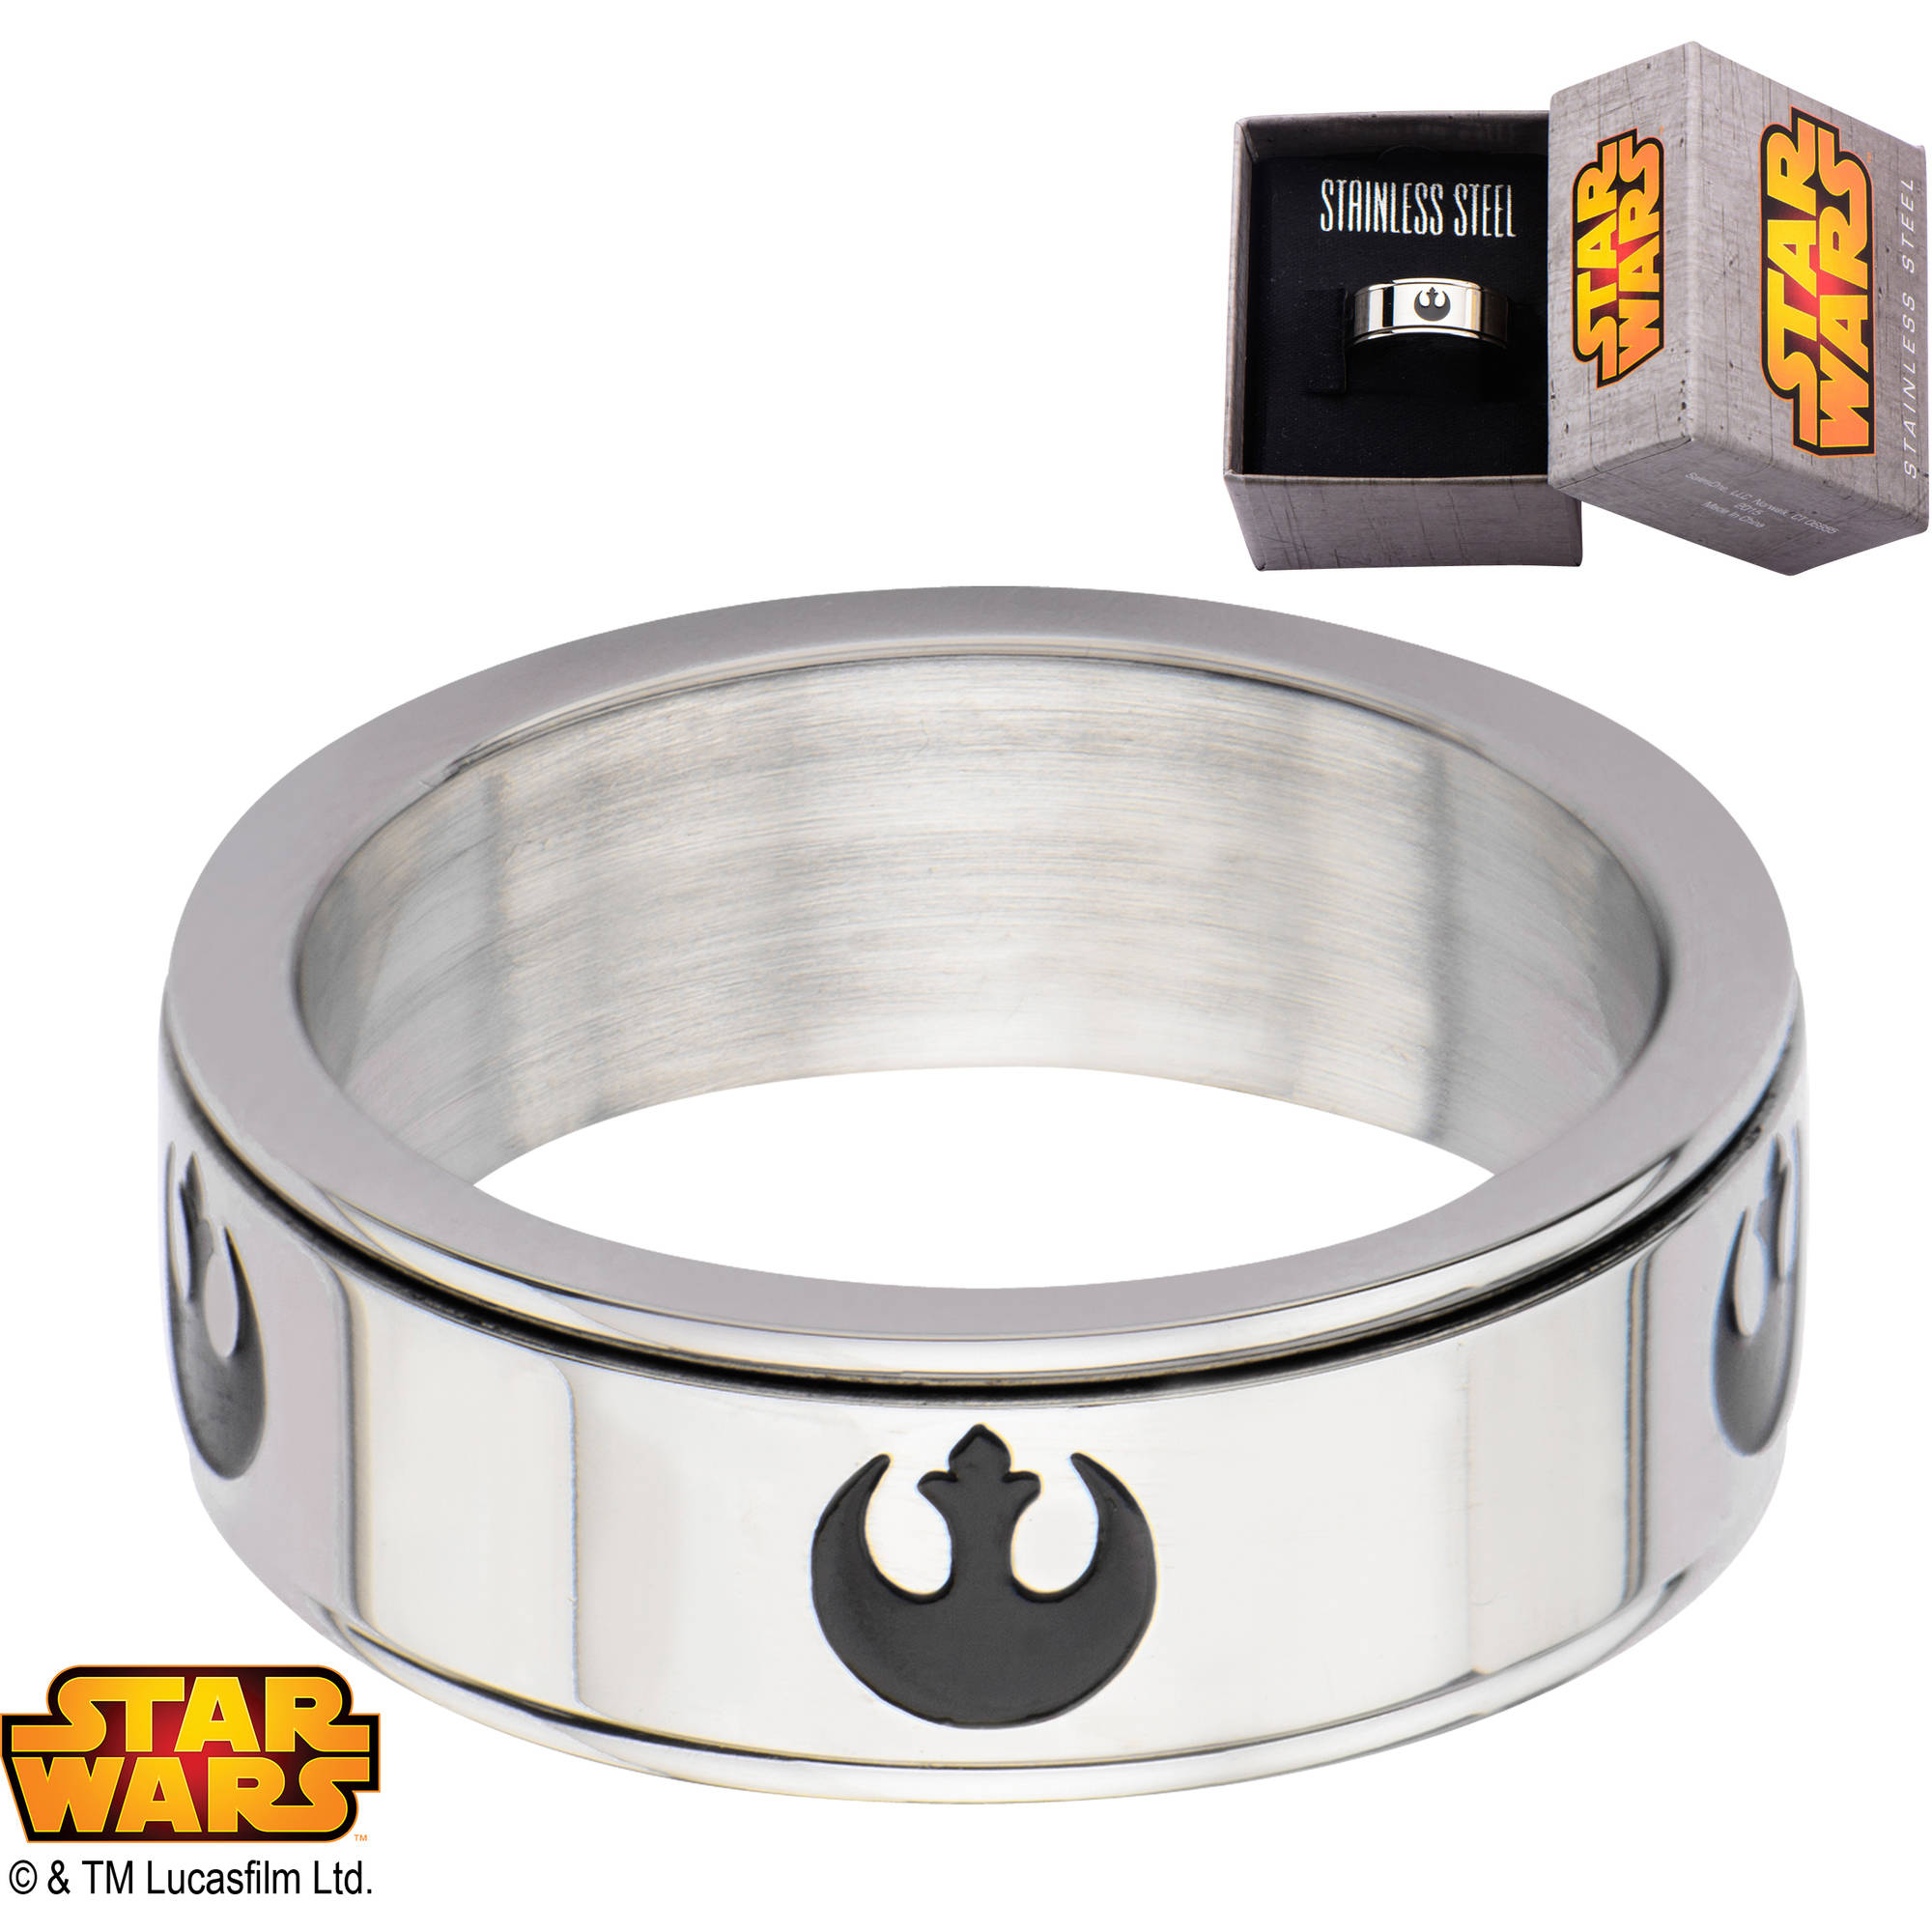 Star Wars Mens Star Wars Ring Rebel Alliance Stainless Steel zl3PJFwmss